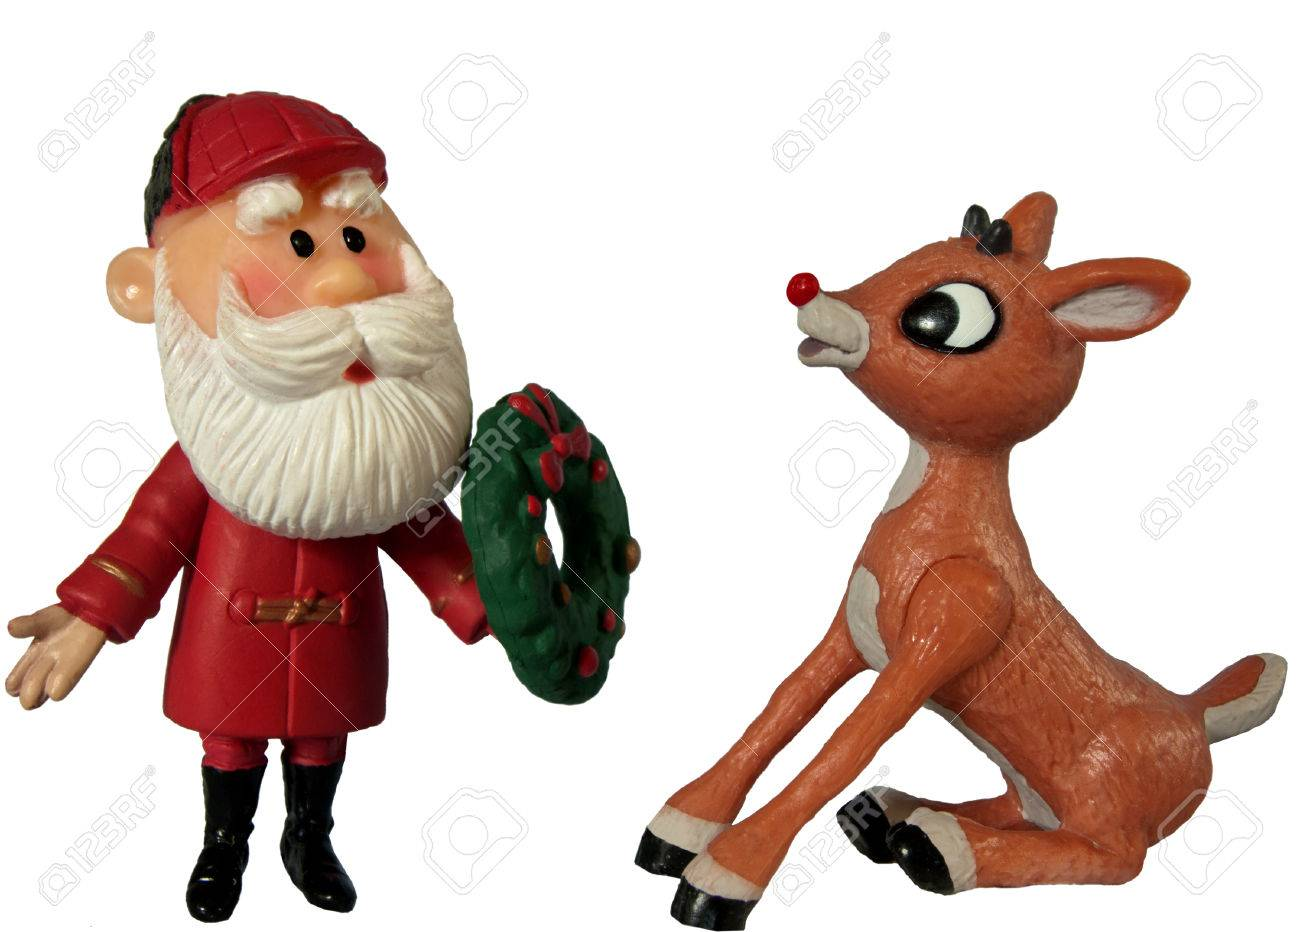 Rudolph the red nosed reindeer porn nude